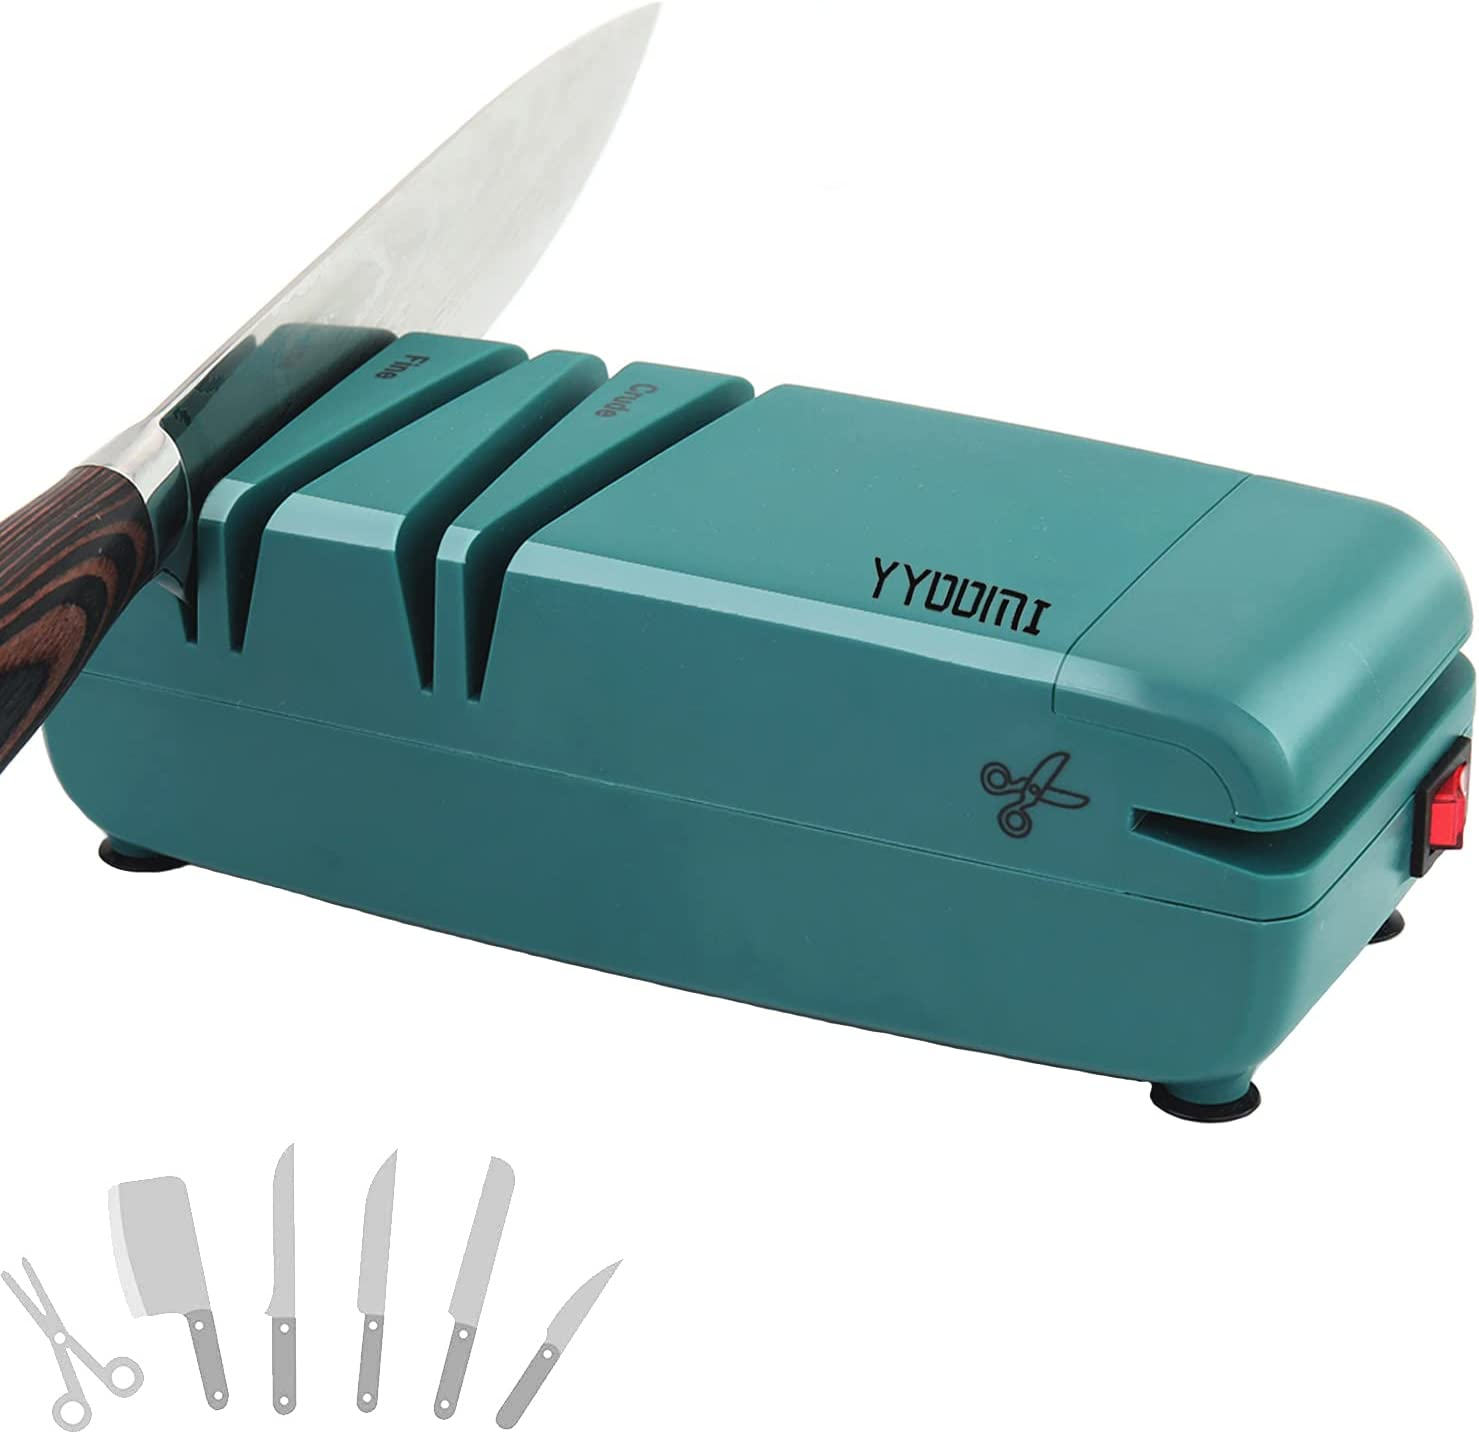 YYOOMI Knife Sharpener, Electric Knife Sharpening with Diamond Abrasives, 2-Stage, Multifunction for Scissors and Screwdriver for Home